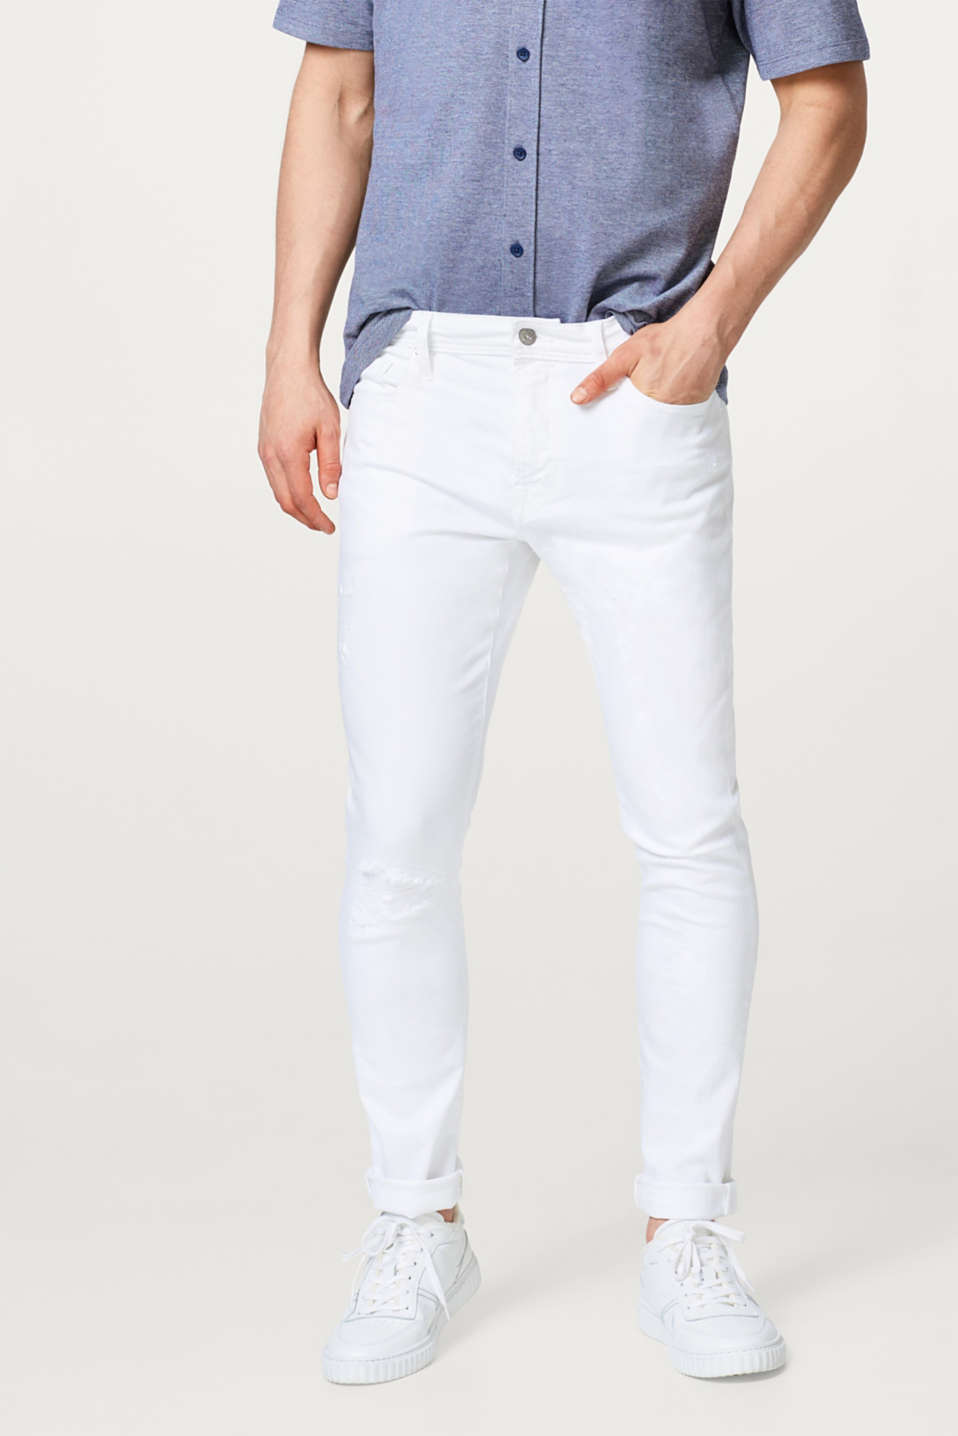 edc - Witte stretchjeans met destroyed effect